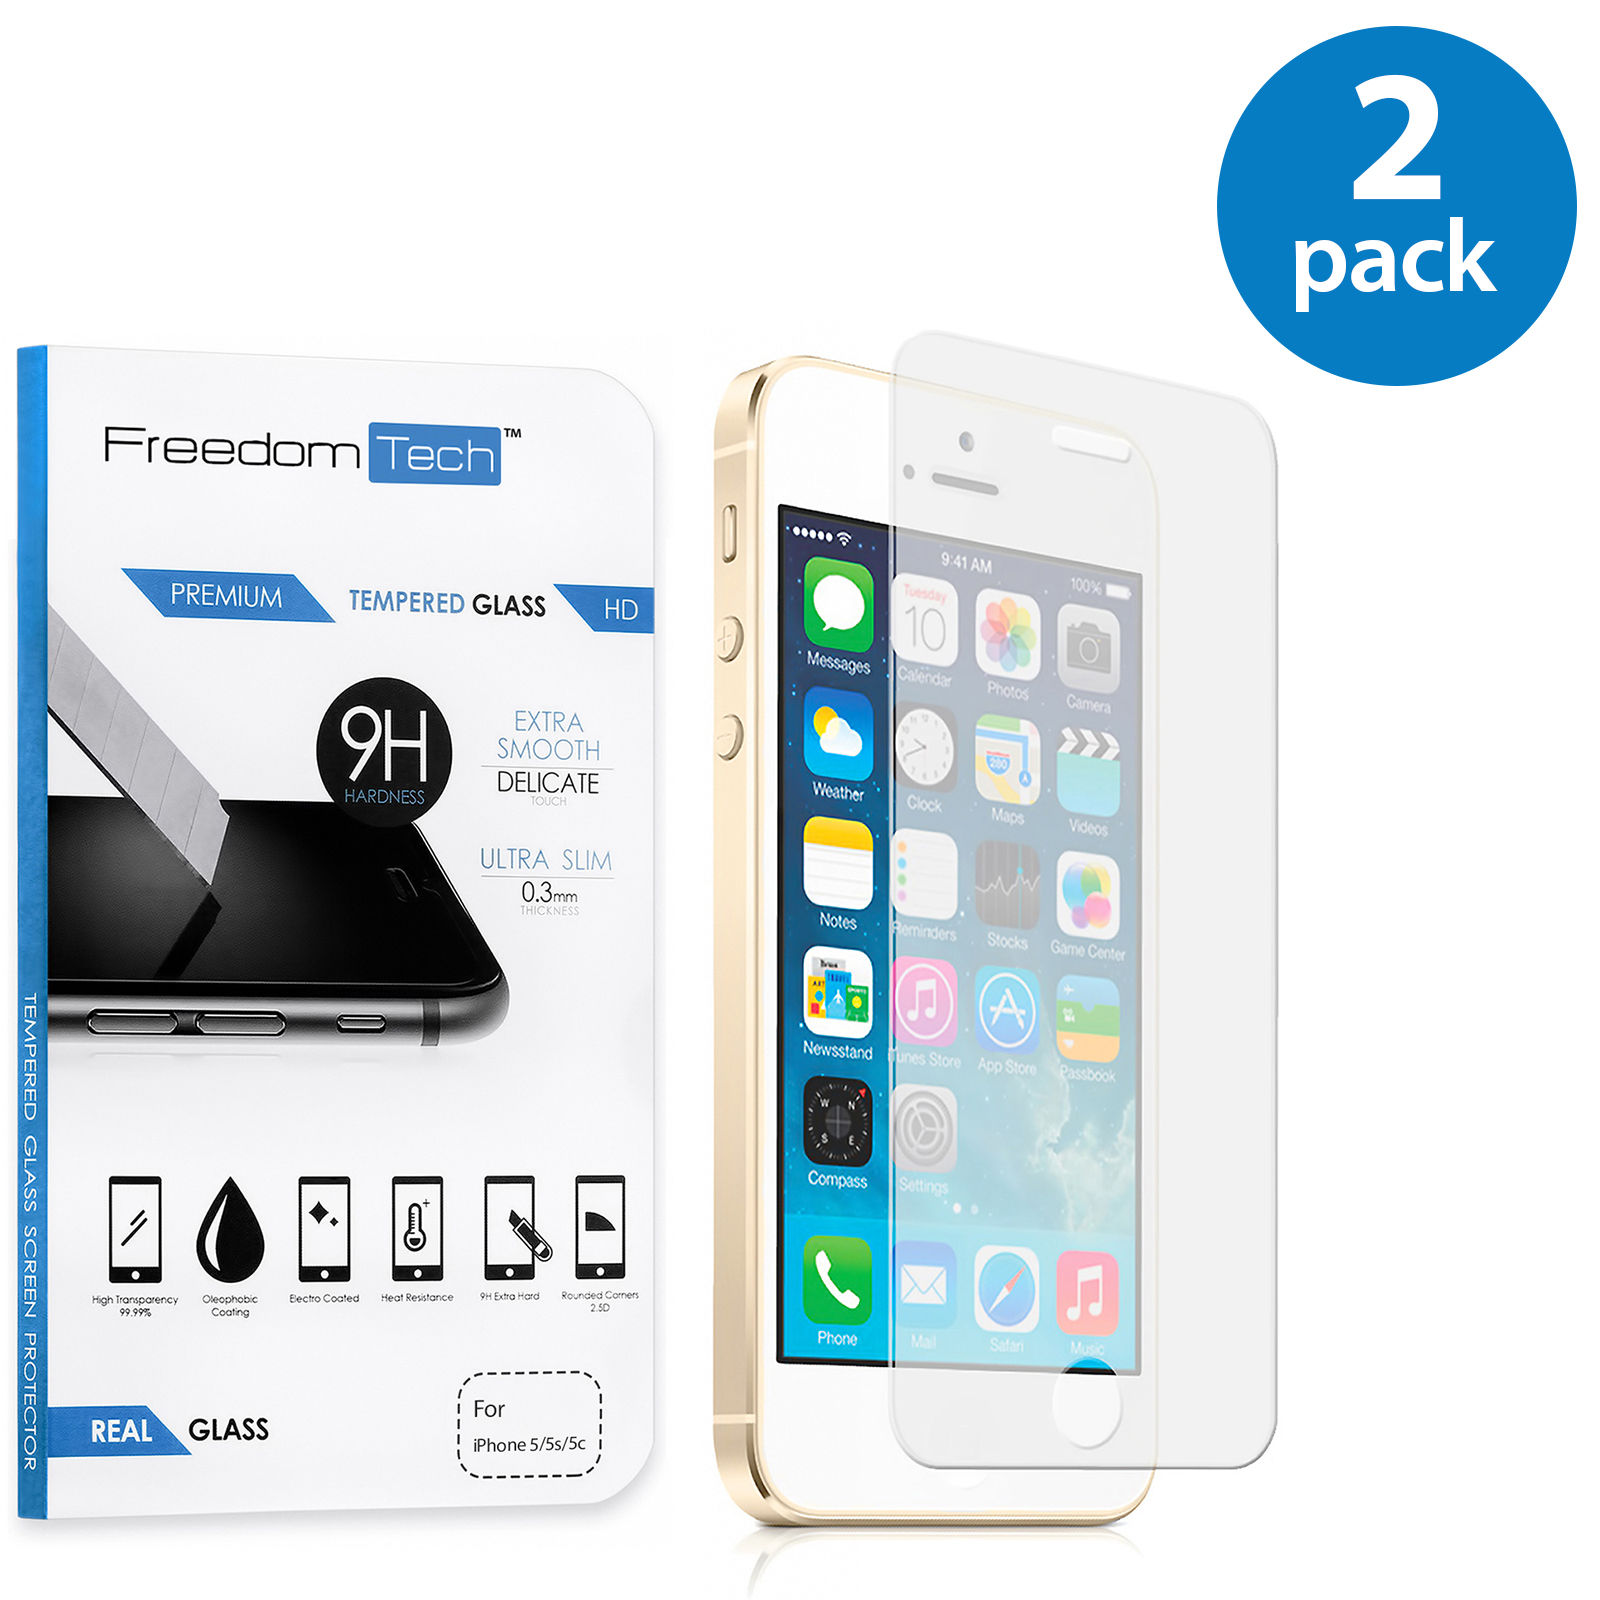 2x Freedomtech Tempered Glass Screen Protector Film LCD Guard For Apple iPhone 5S